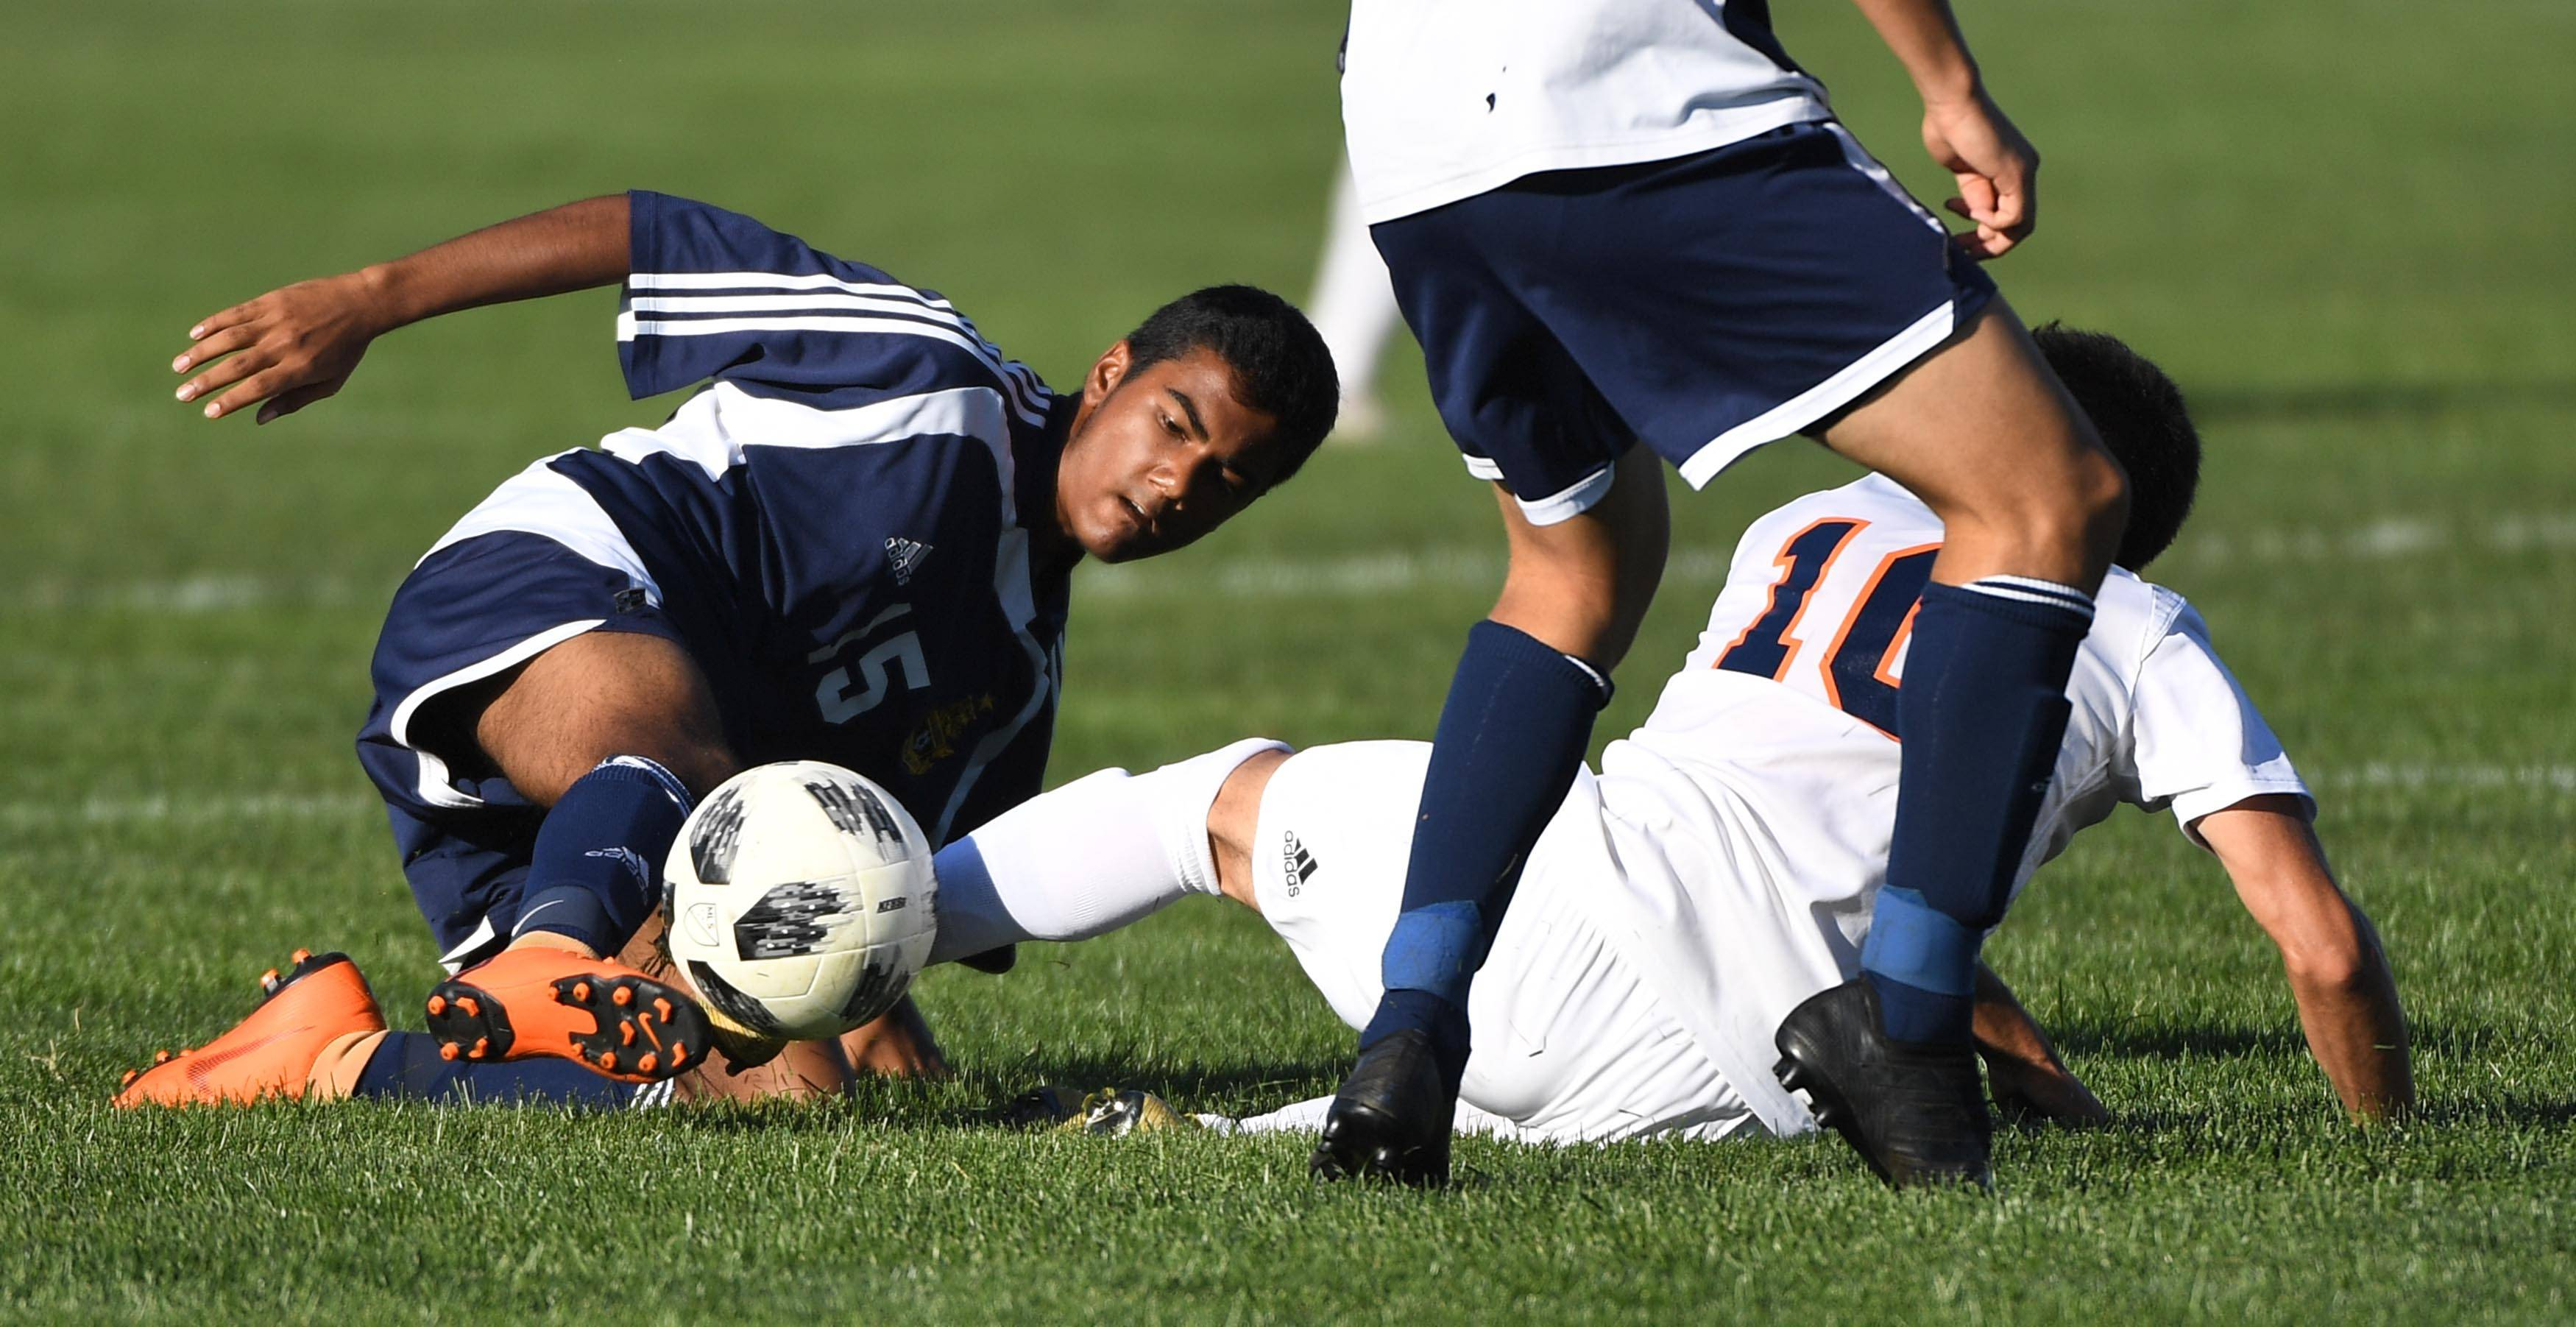 Neuqua Valley's Kevin Wu, left, and Naperville North's Ali Khorfan battle for the ball from the ground in a boys soccer game Tuesday in Naperville.